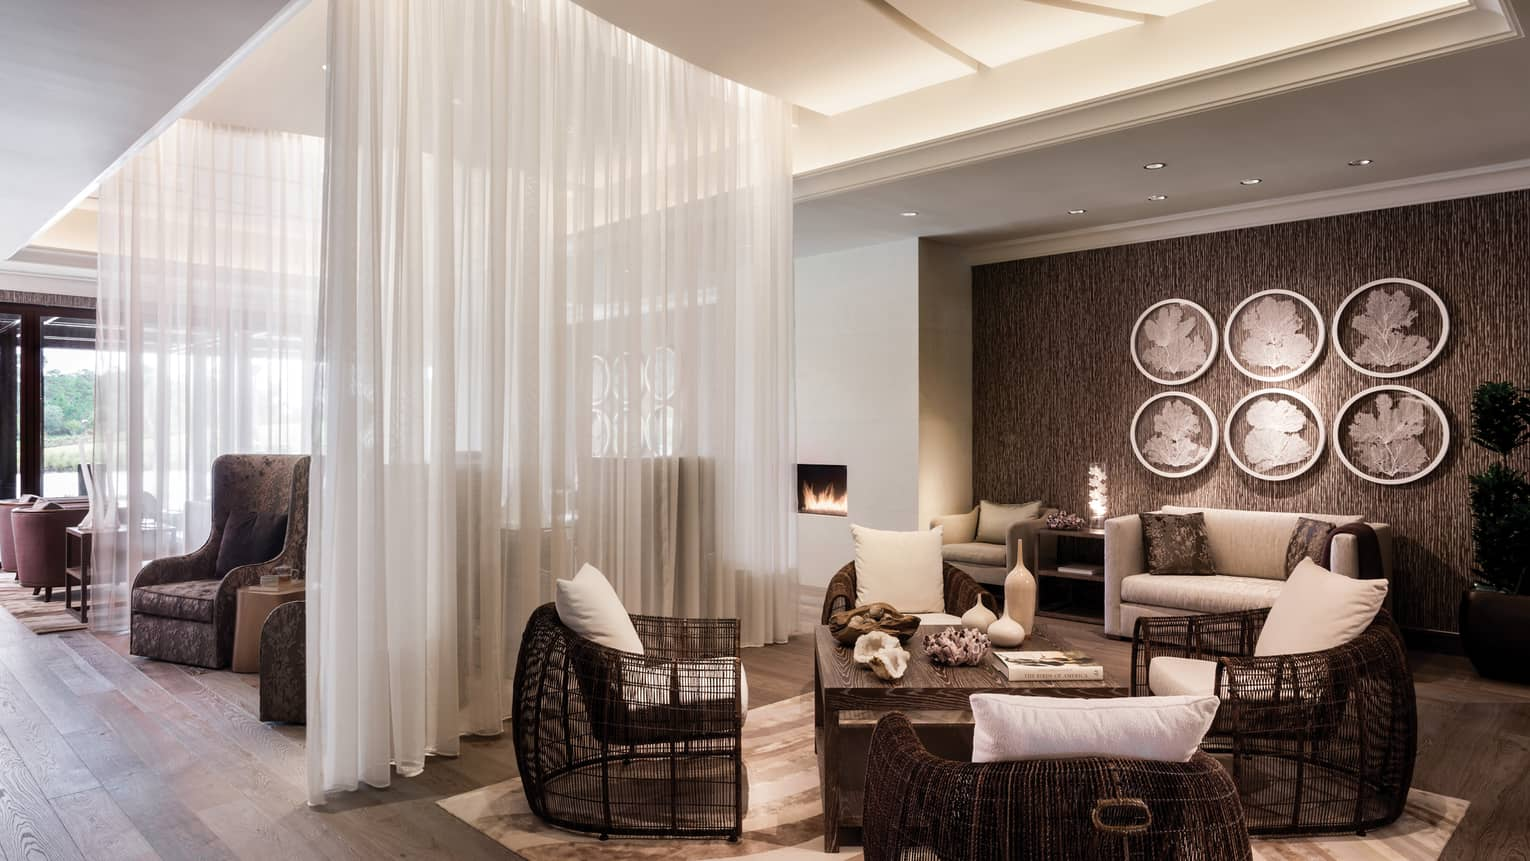 Spa lounge, wicker armchairs with white cushions, room divided by sheer white curtains